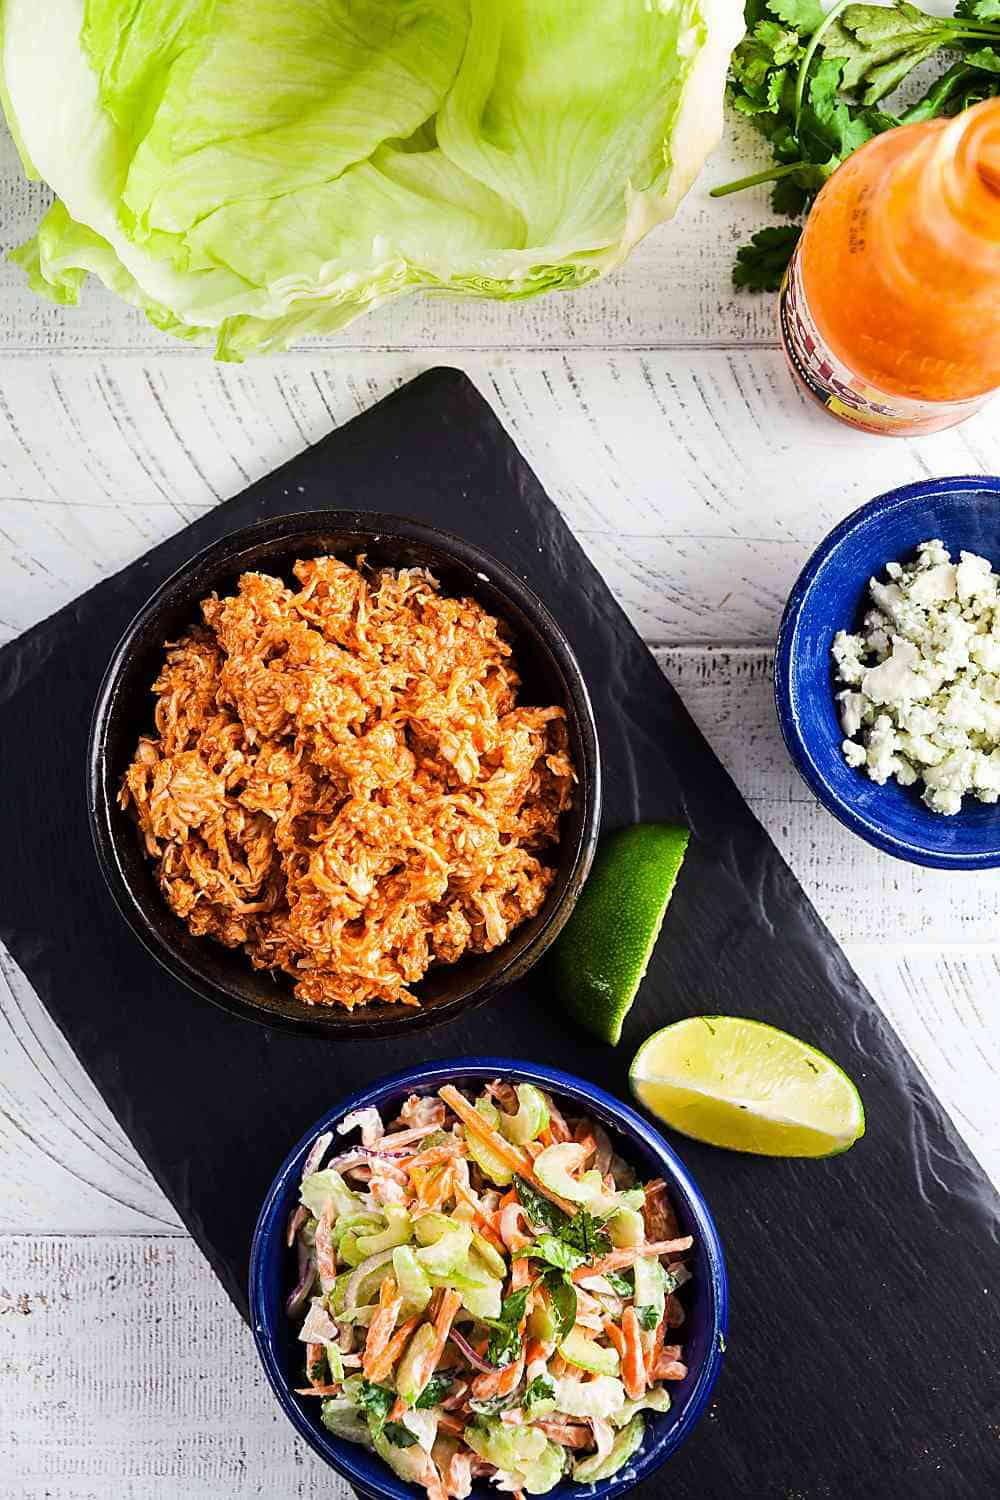 Ingredients to make Buffalo chicken lettuce wraps